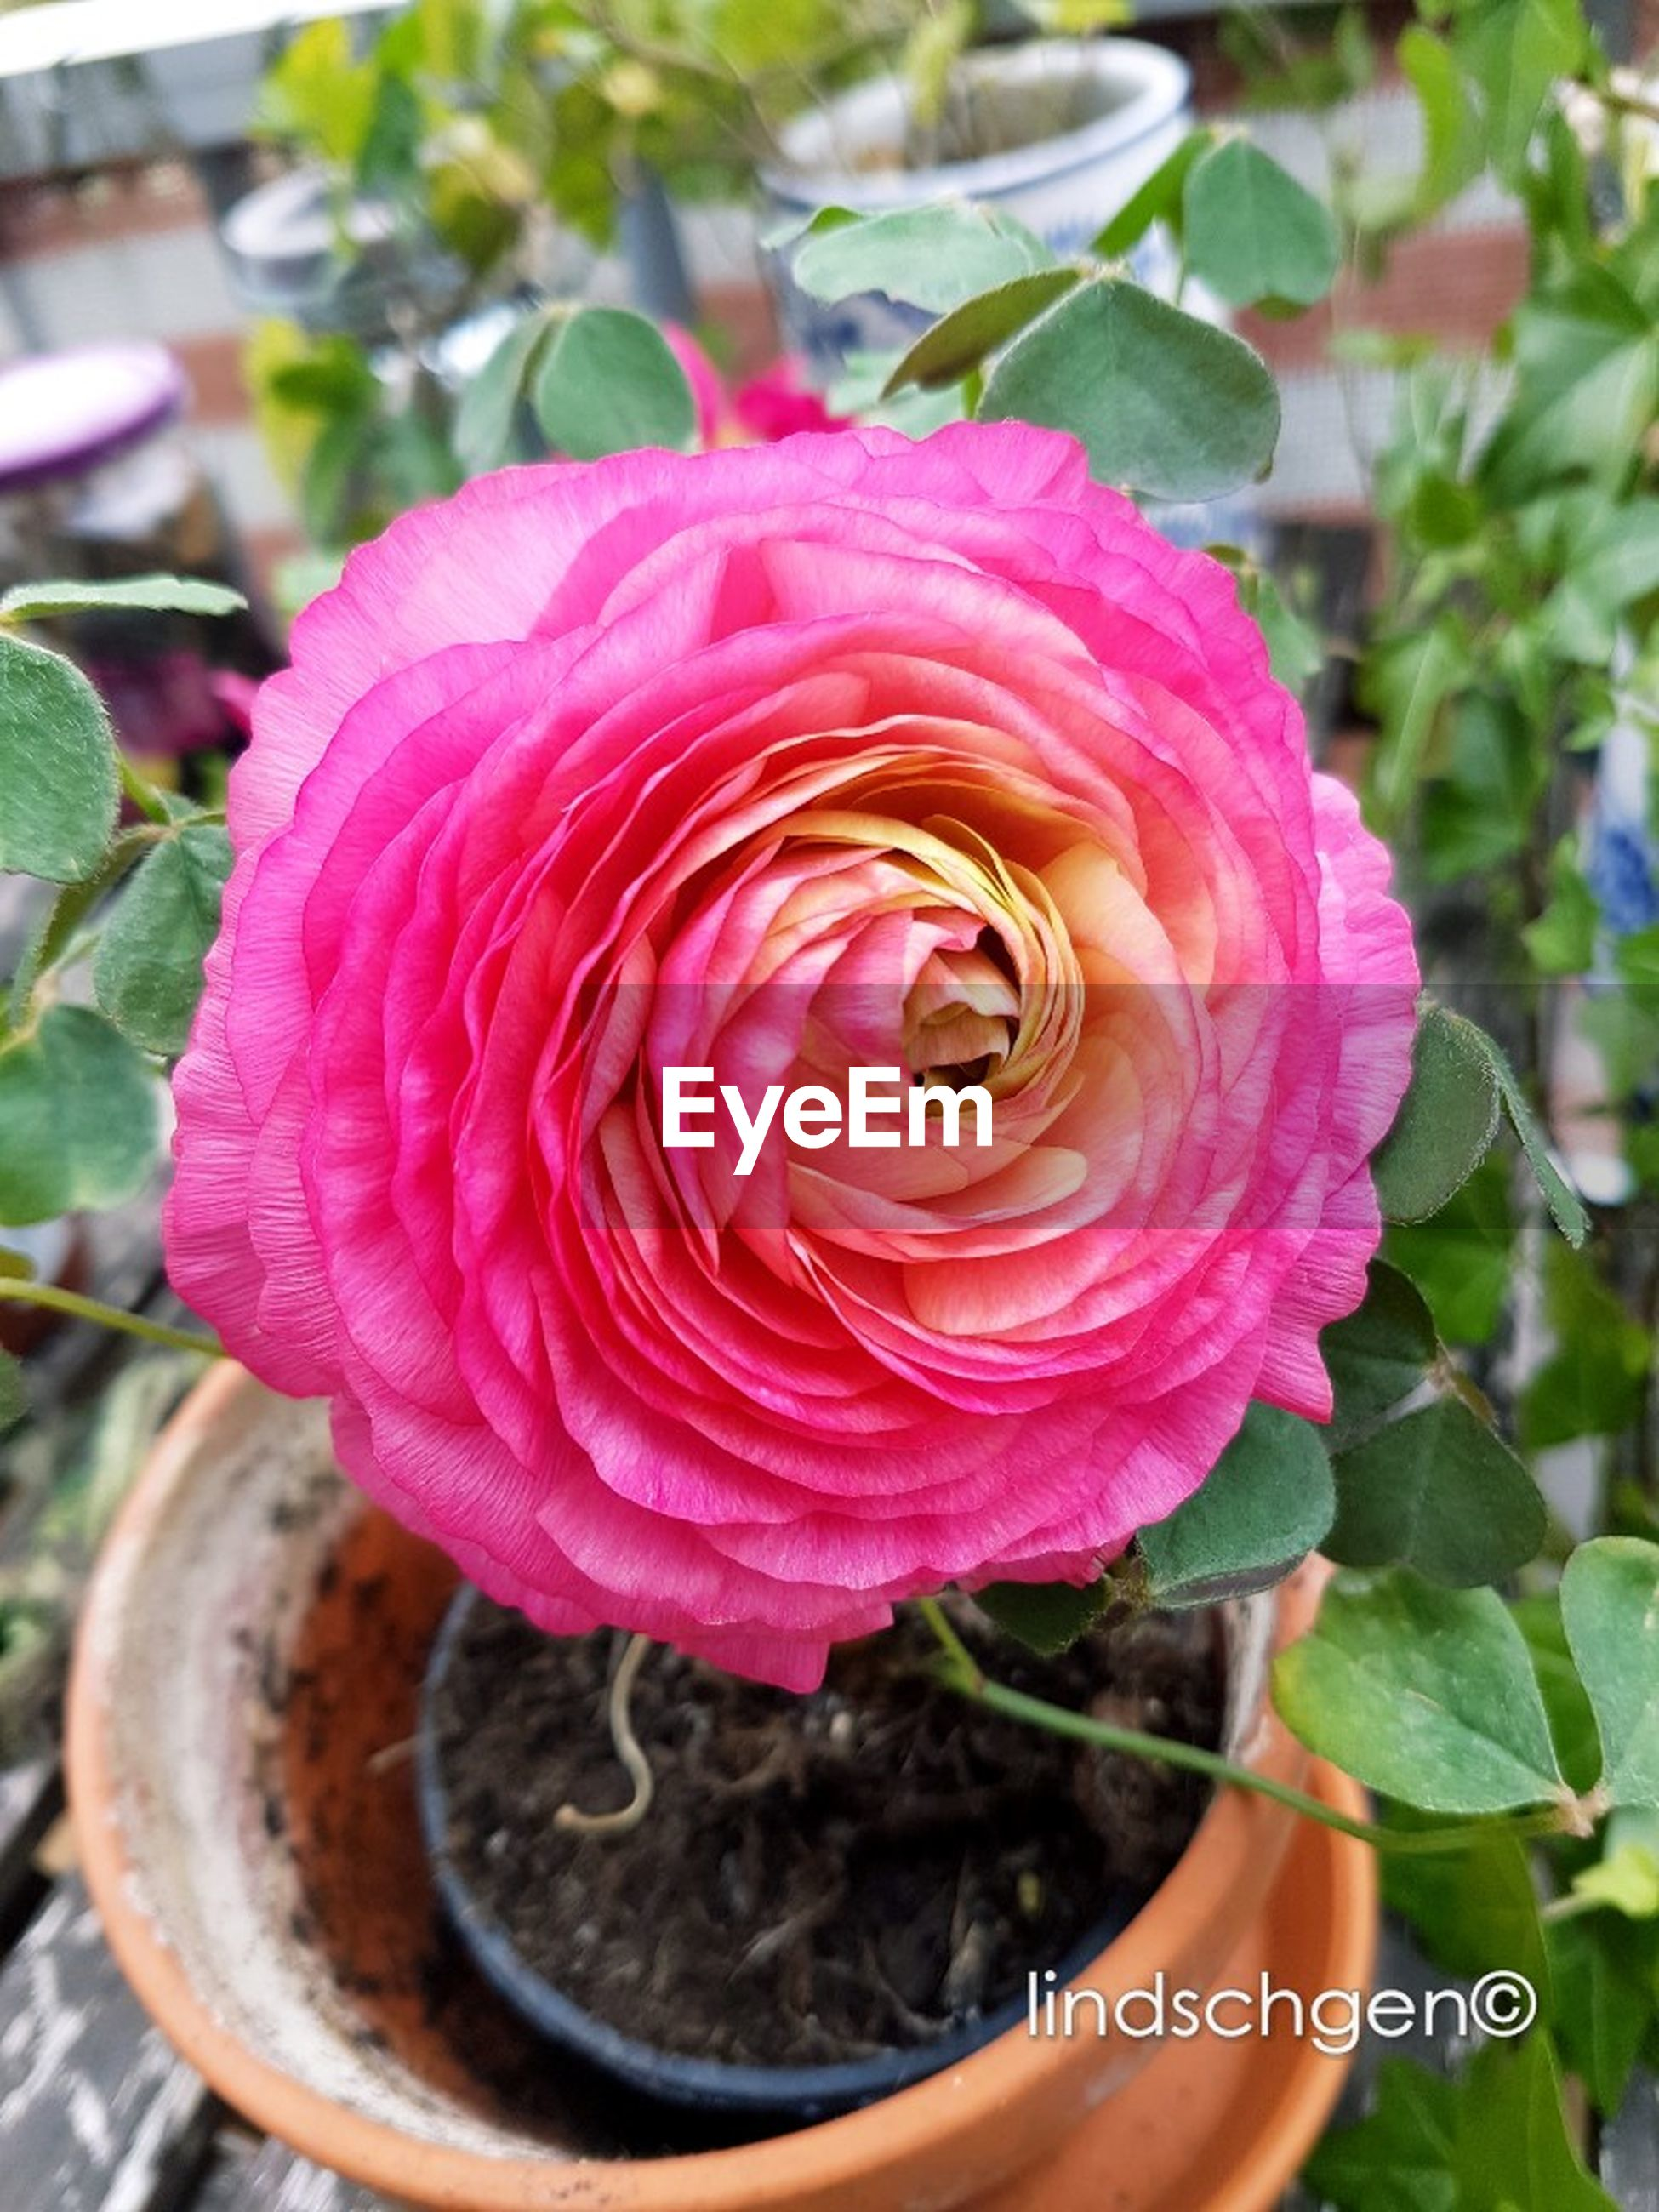 flower, petal, nature, beauty in nature, rose - flower, flower head, fragility, pink color, focus on foreground, freshness, plant, growth, close-up, outdoors, leaf, day, no people